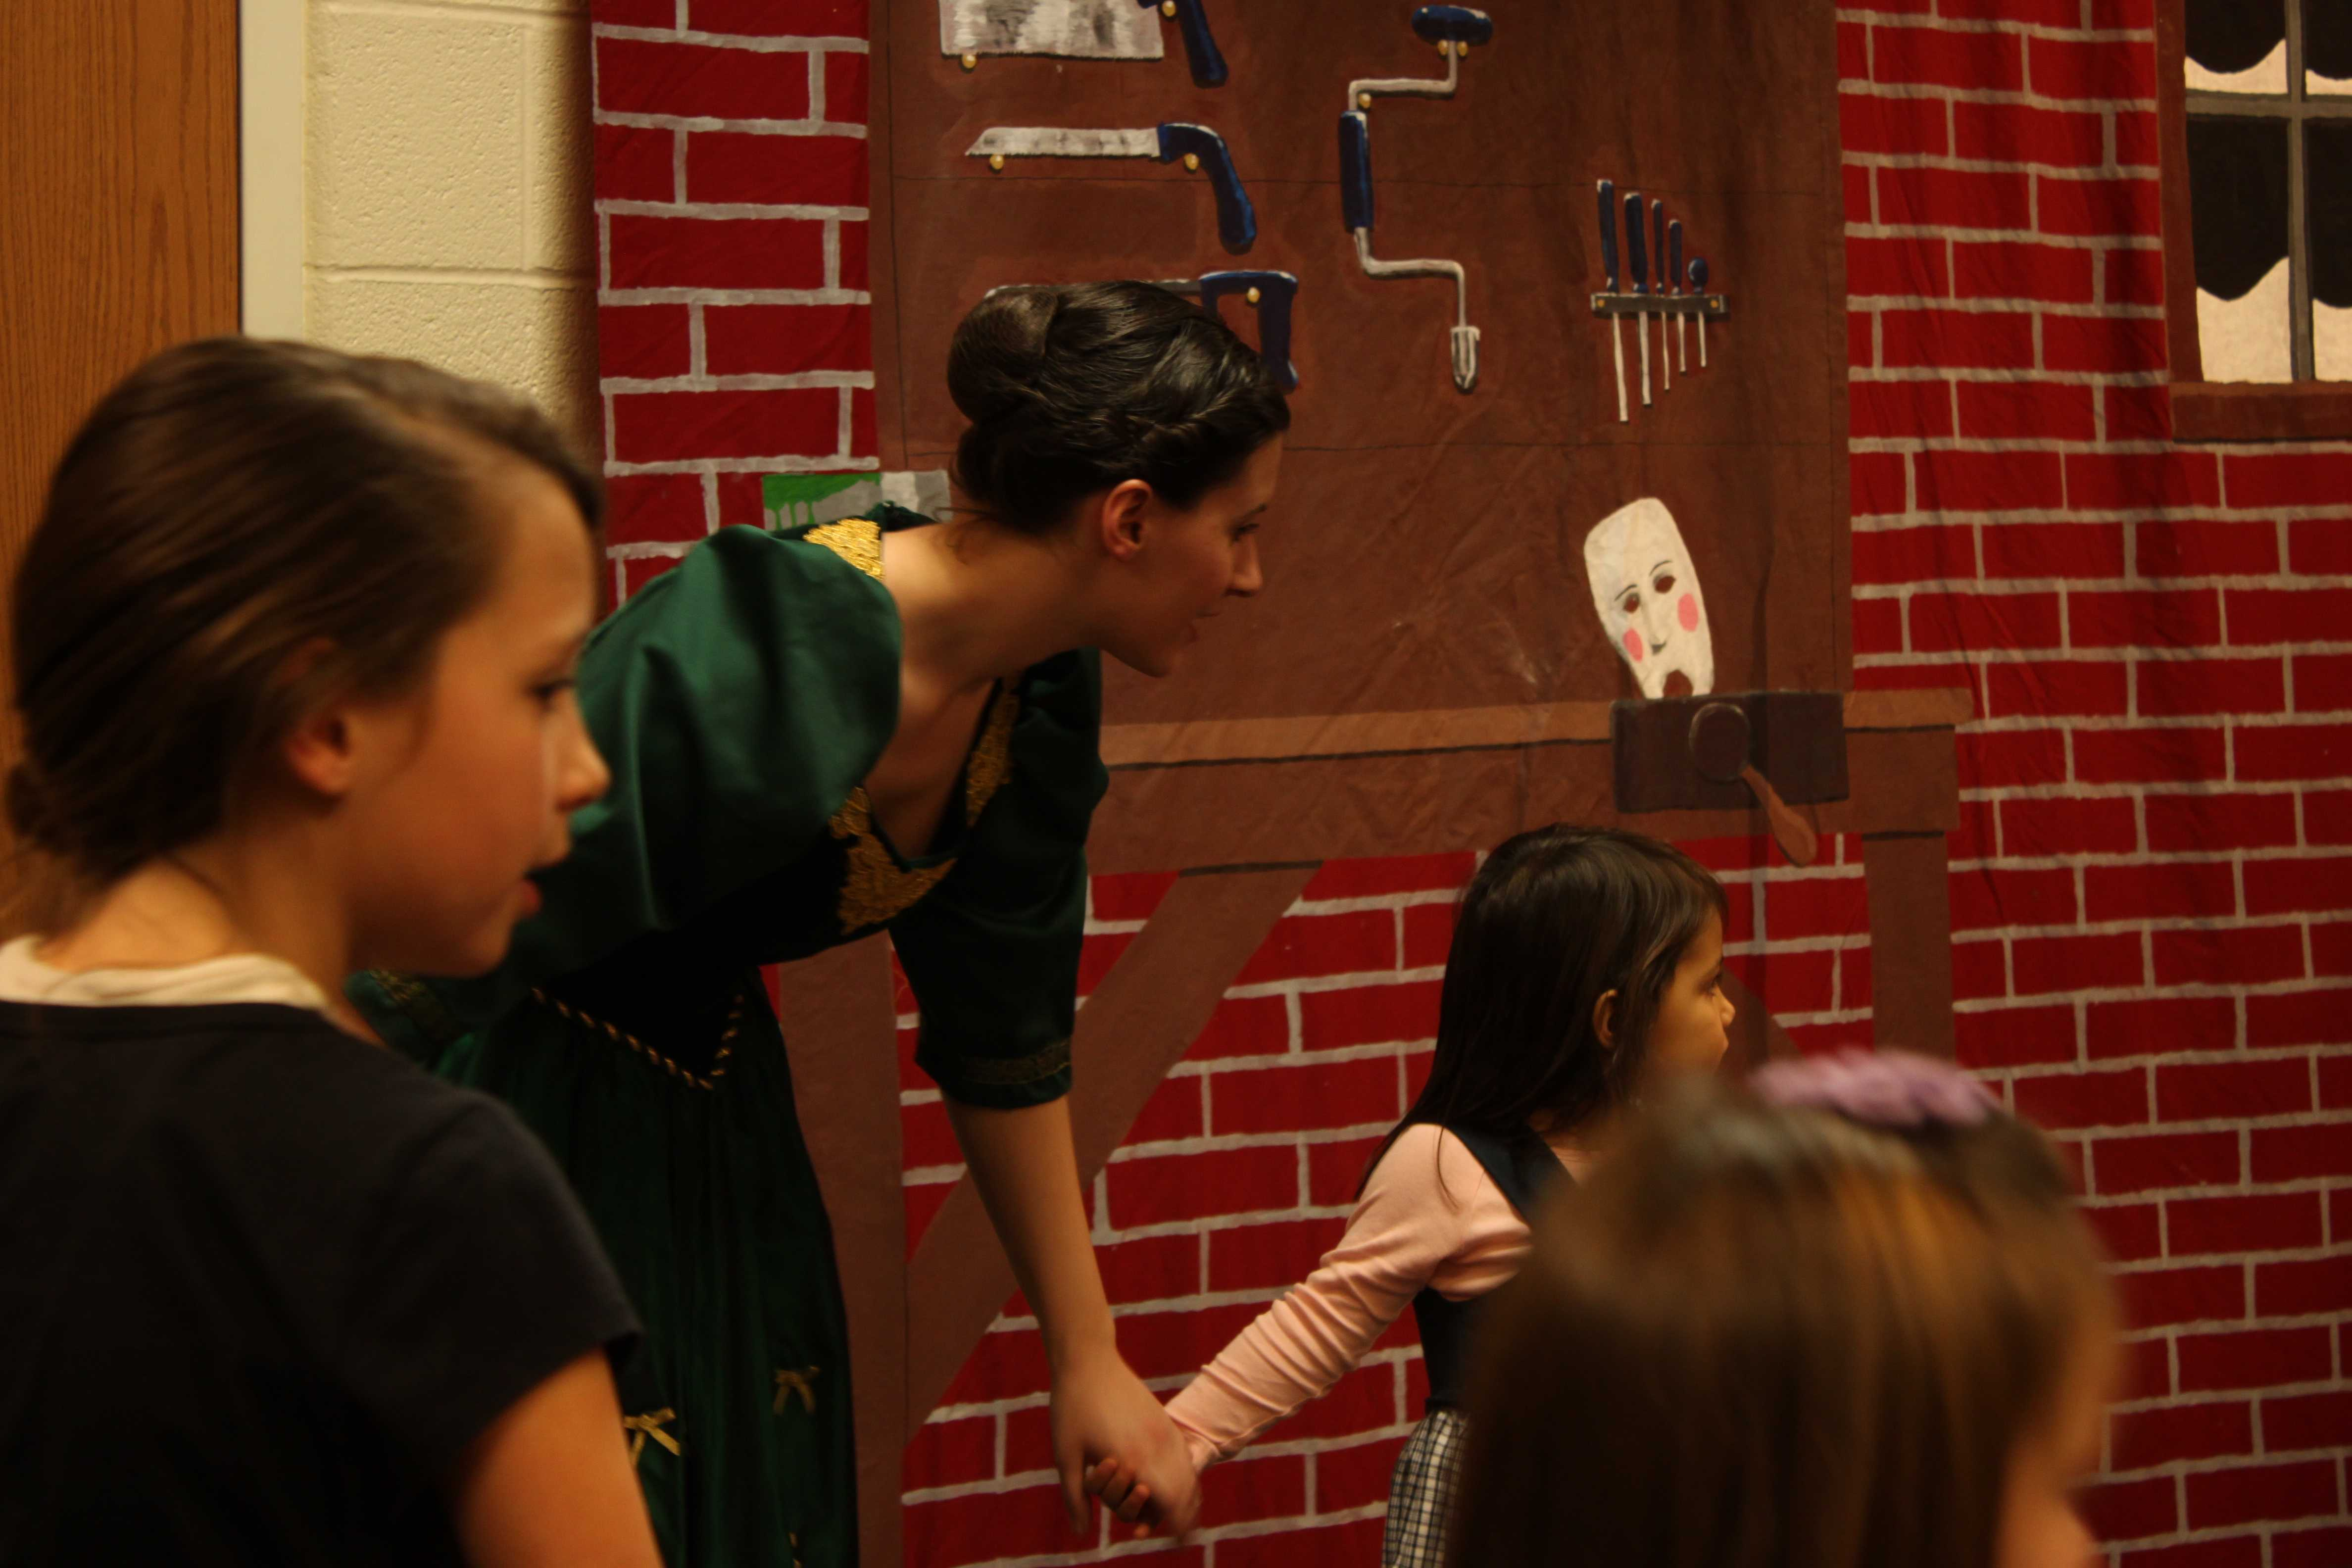 Senior Nolie Wagner interacts with children at a meet and greet at the Granville Public Library. PHOTO BY JULIA LERNER